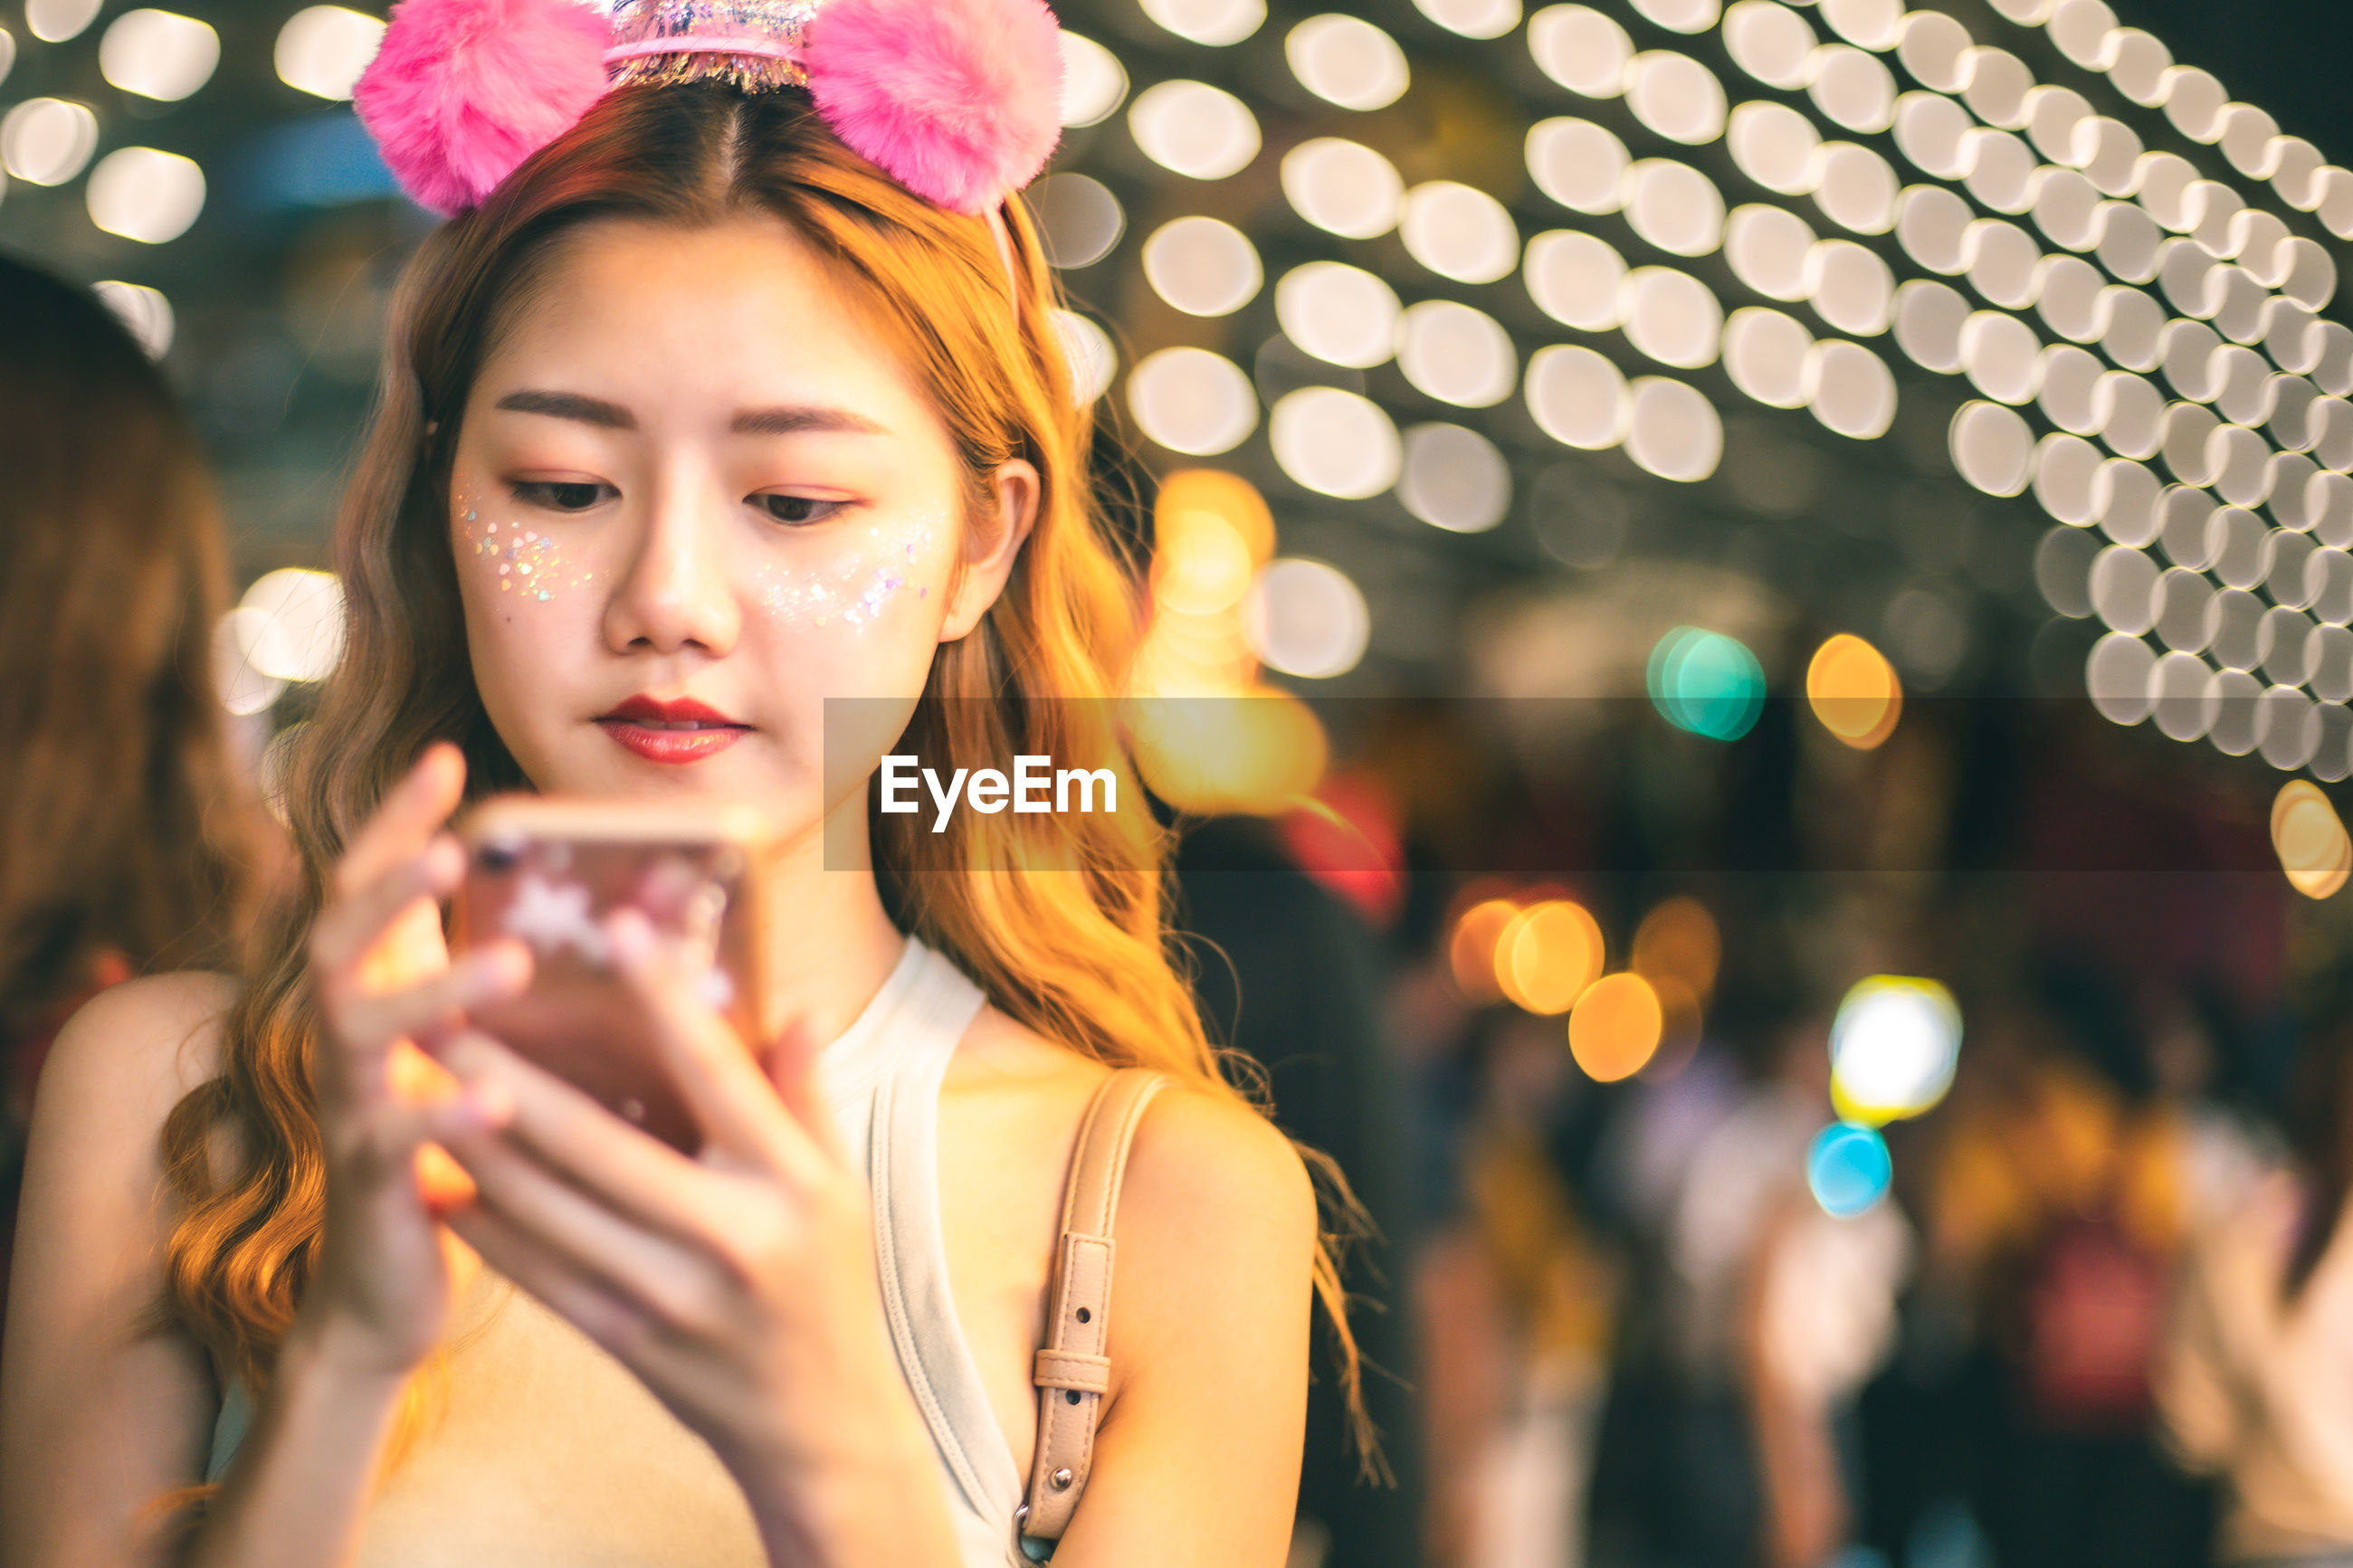 Young woman using mobile against illuminated lights